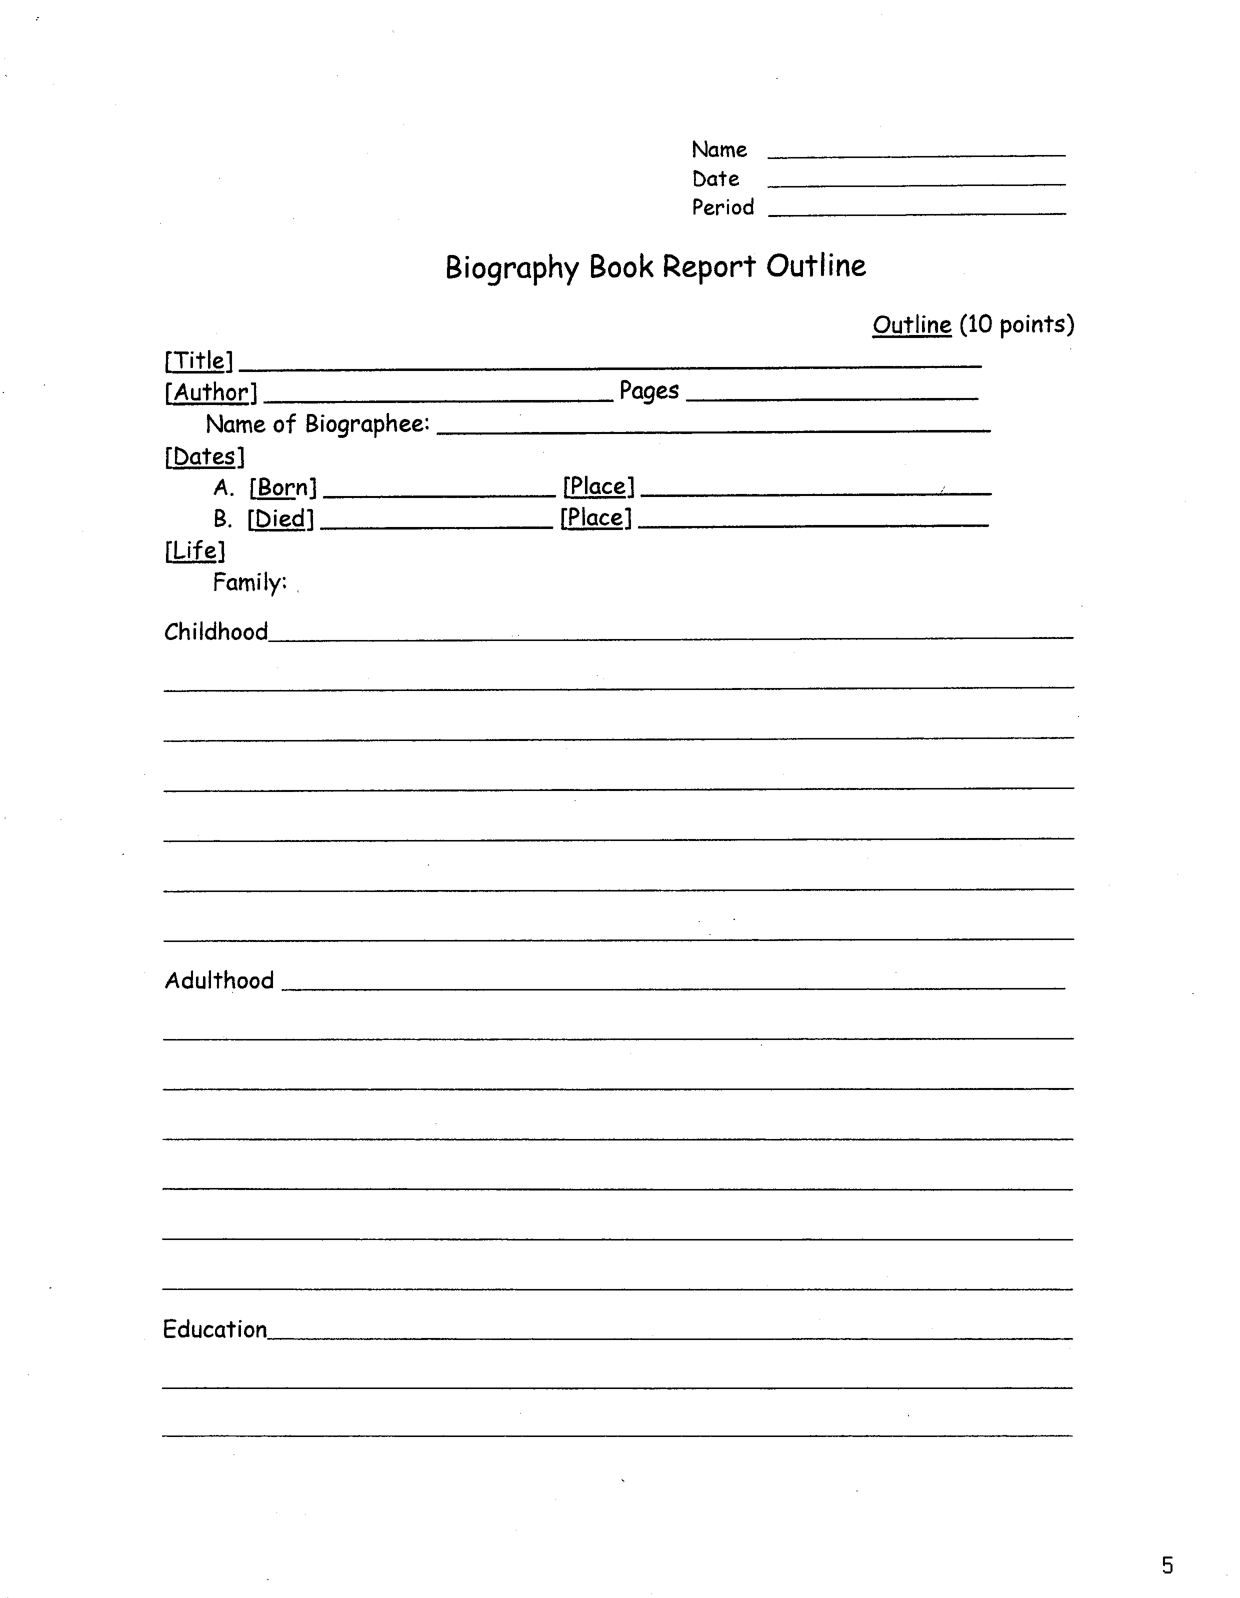 Biography Book Report Outline